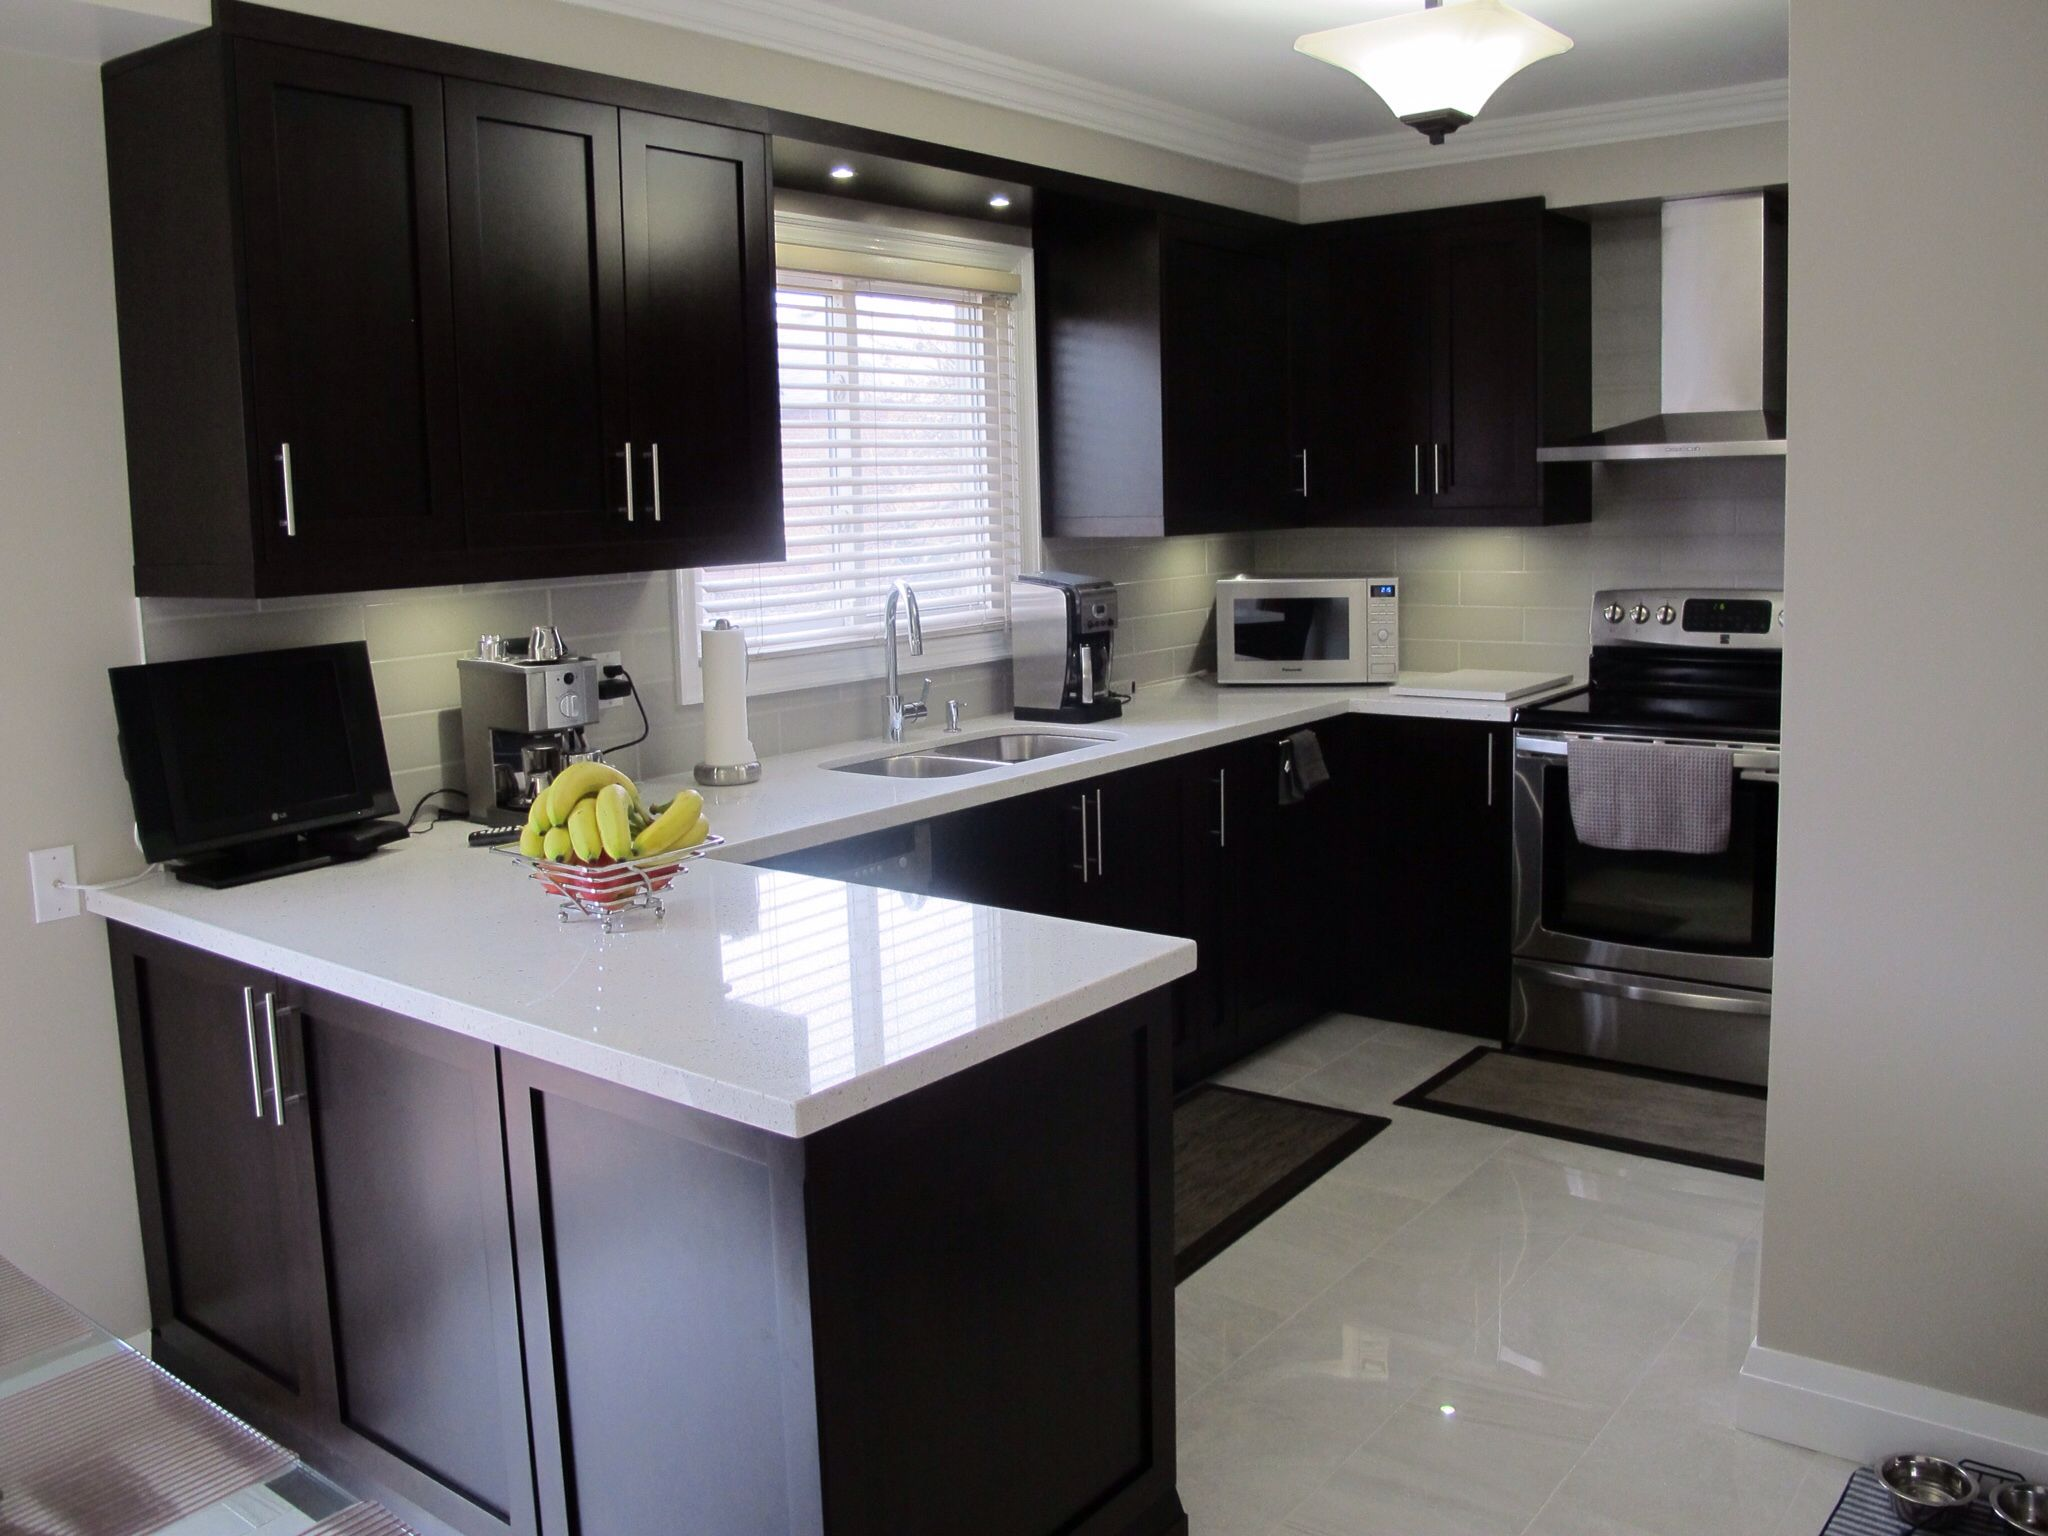 Dark Wood Cabinets With White Quartz Countertops Kitchen Remodel Small Kitchen Furniture Design Kitchen Design Small